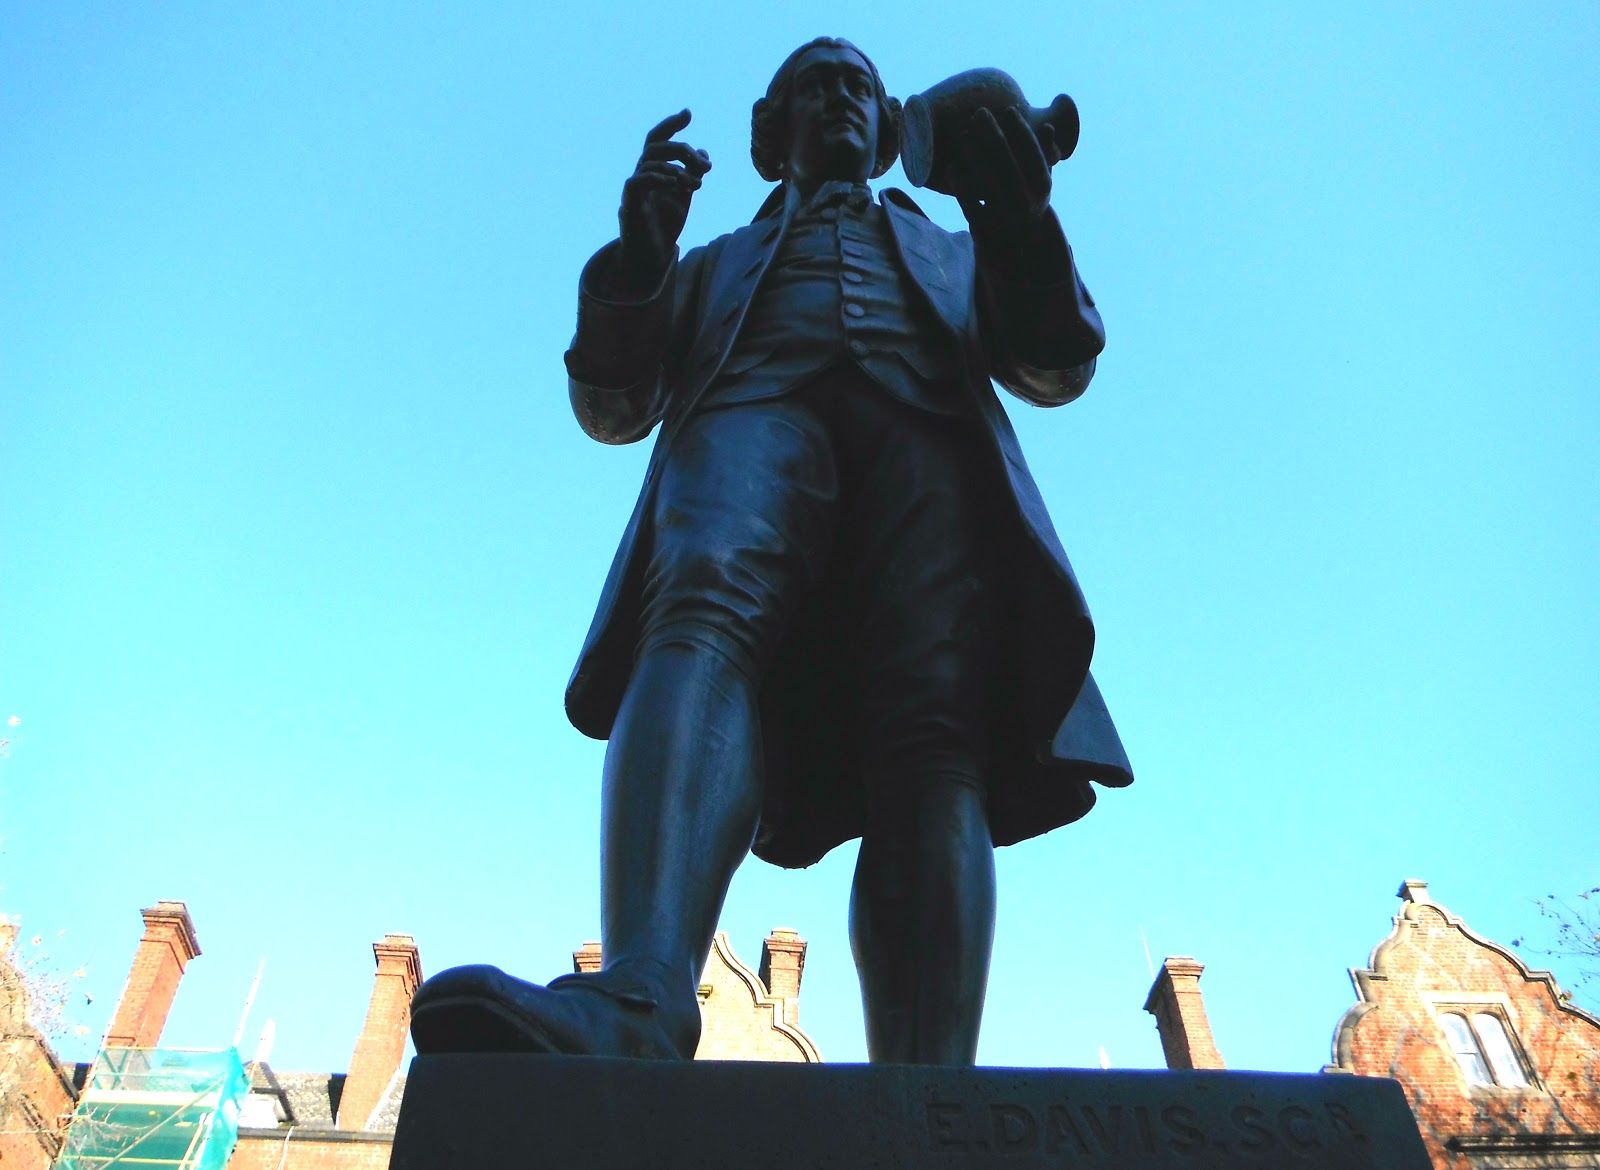 Statue of Josiah Wedgwood